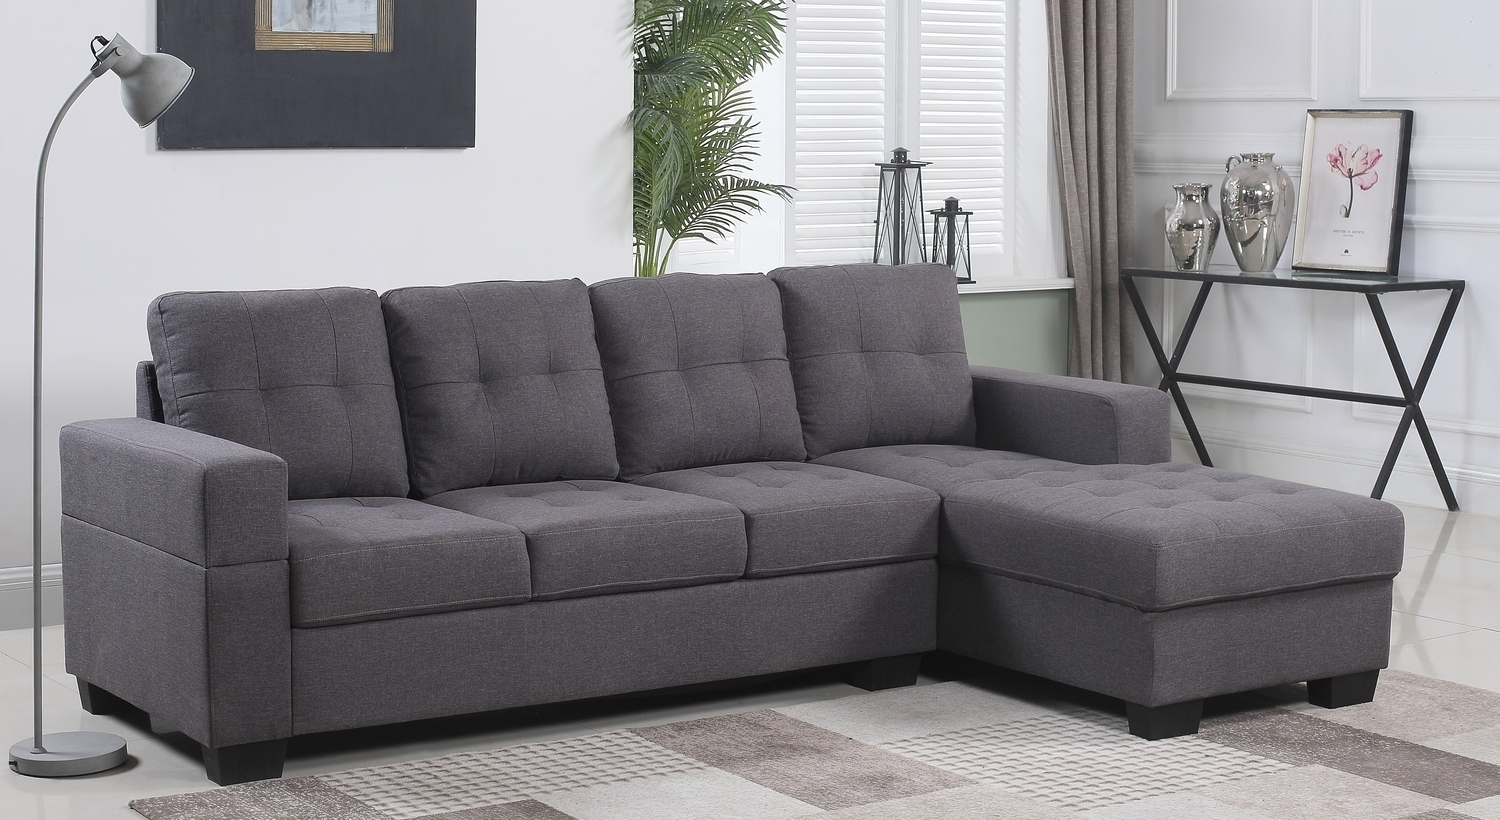 Newmarket Ontario Sectional Sofas Throughout Most Recent Comfort Night (View 6 of 15)